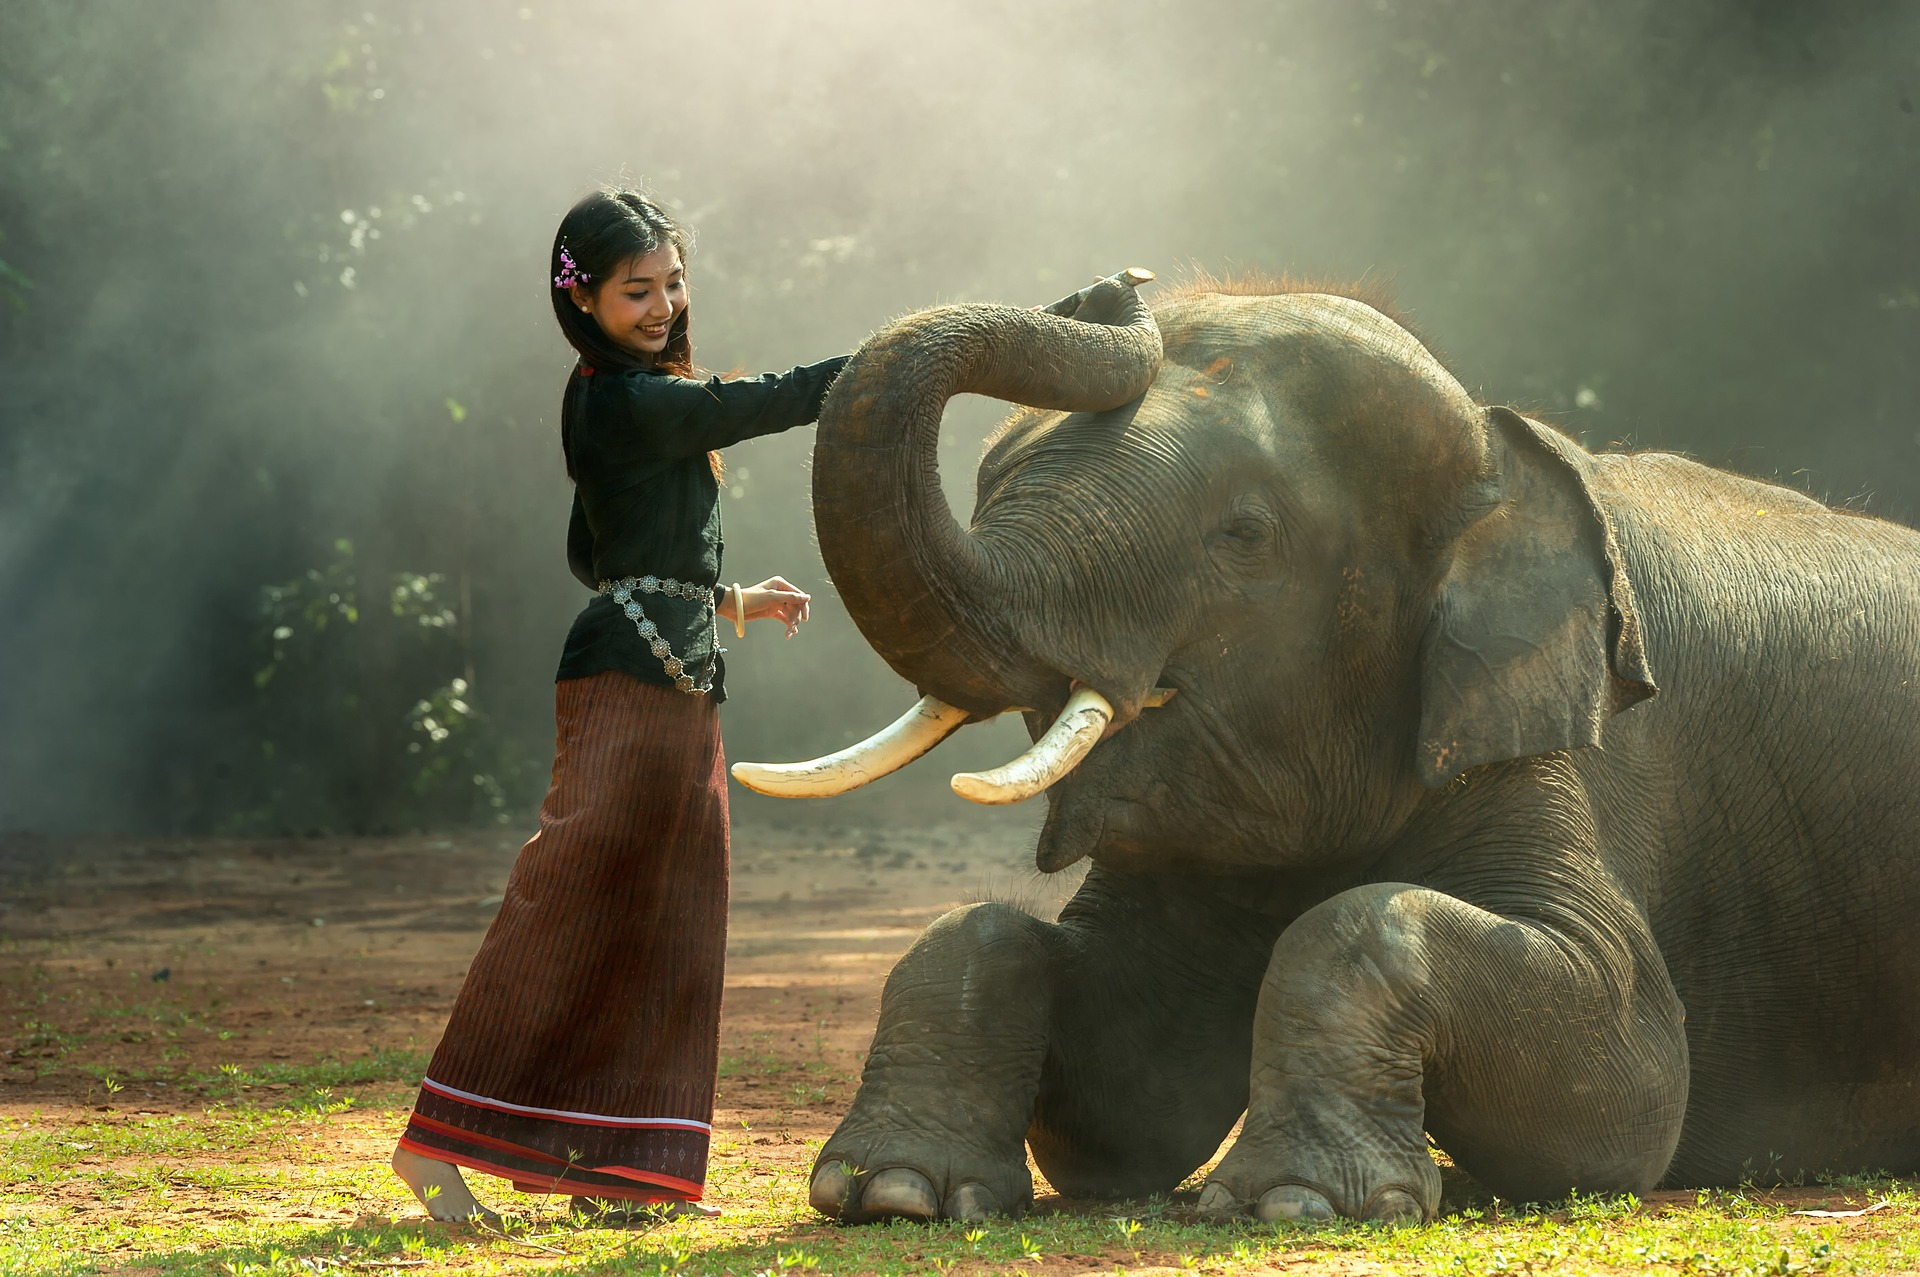 Girl With the Elephant, Activity, Elephant, Giant, Girl, HQ Photo